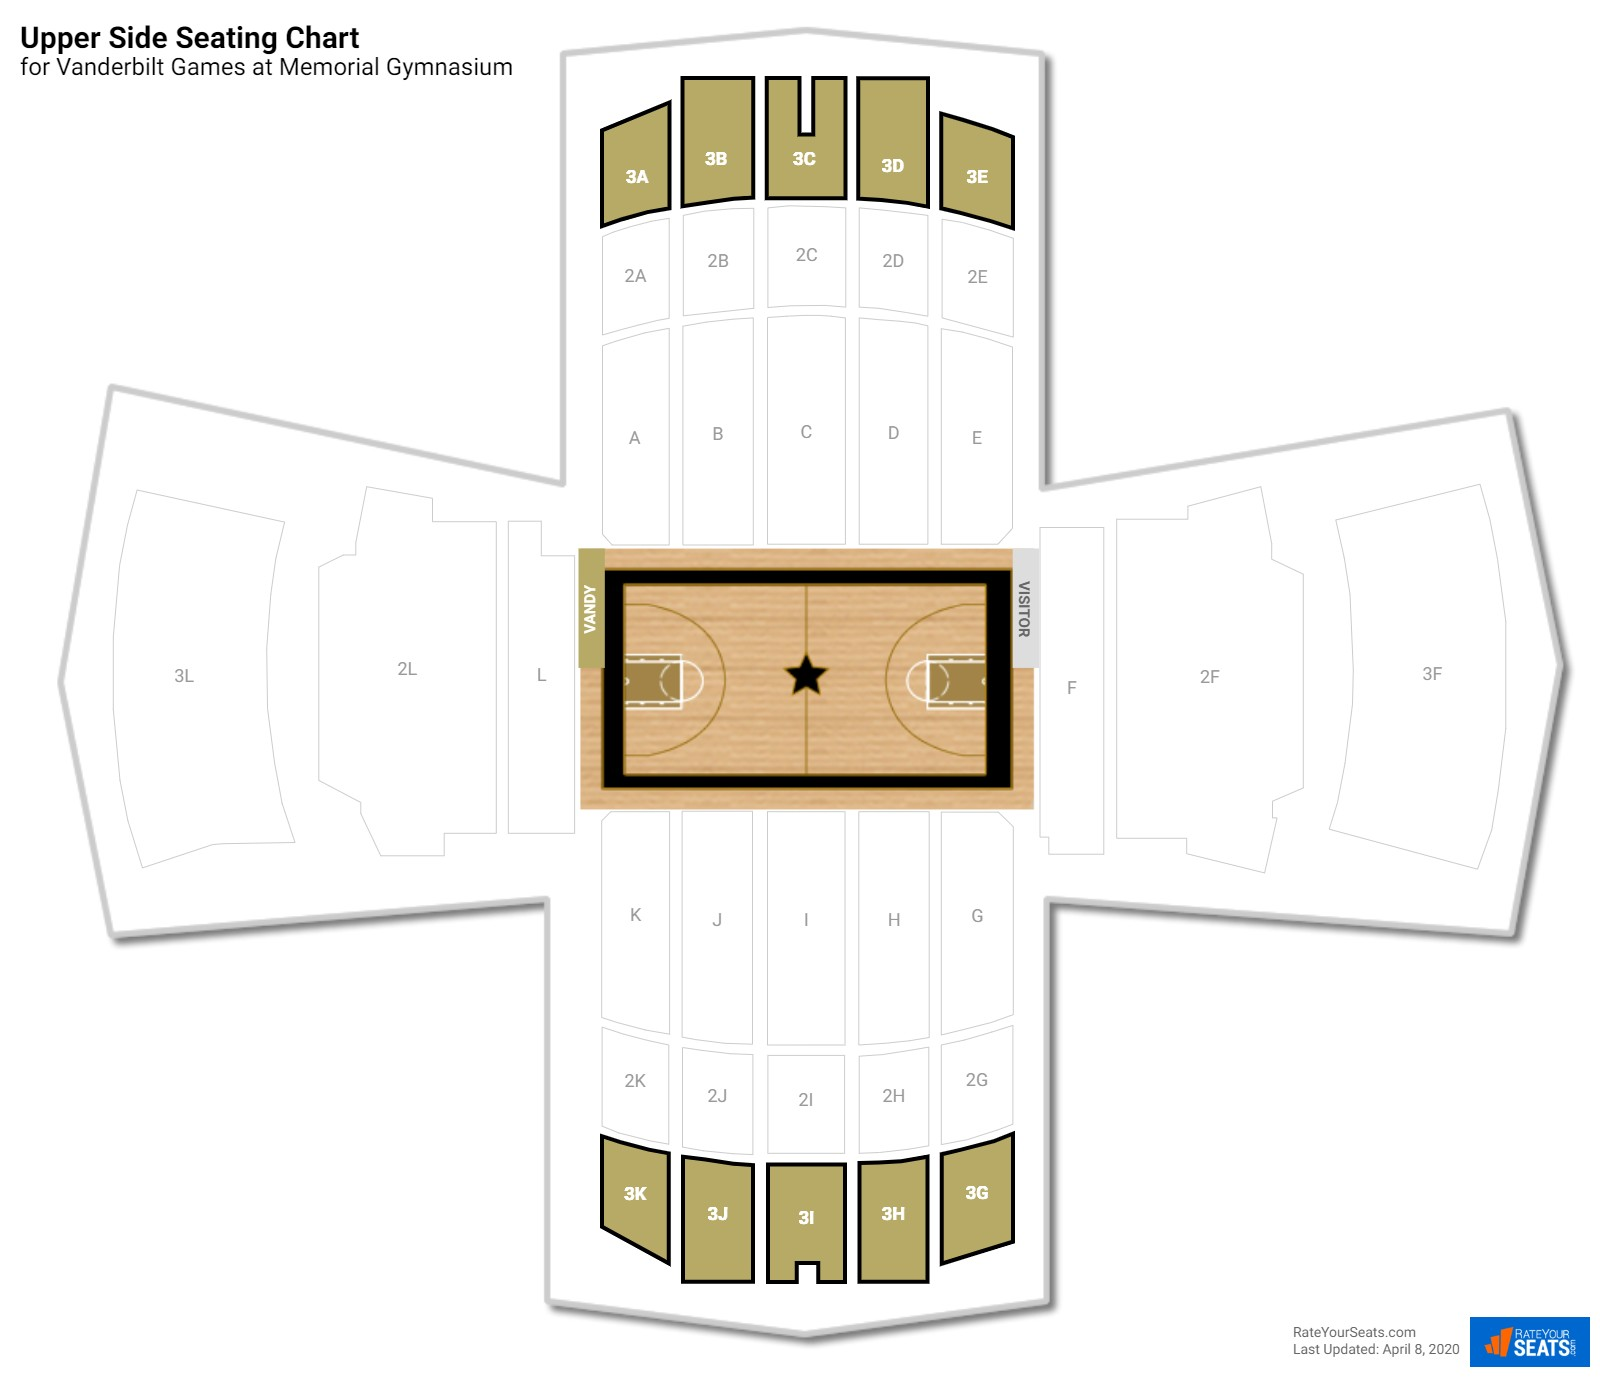 Memorial Gymnasium Upper Side seating chart